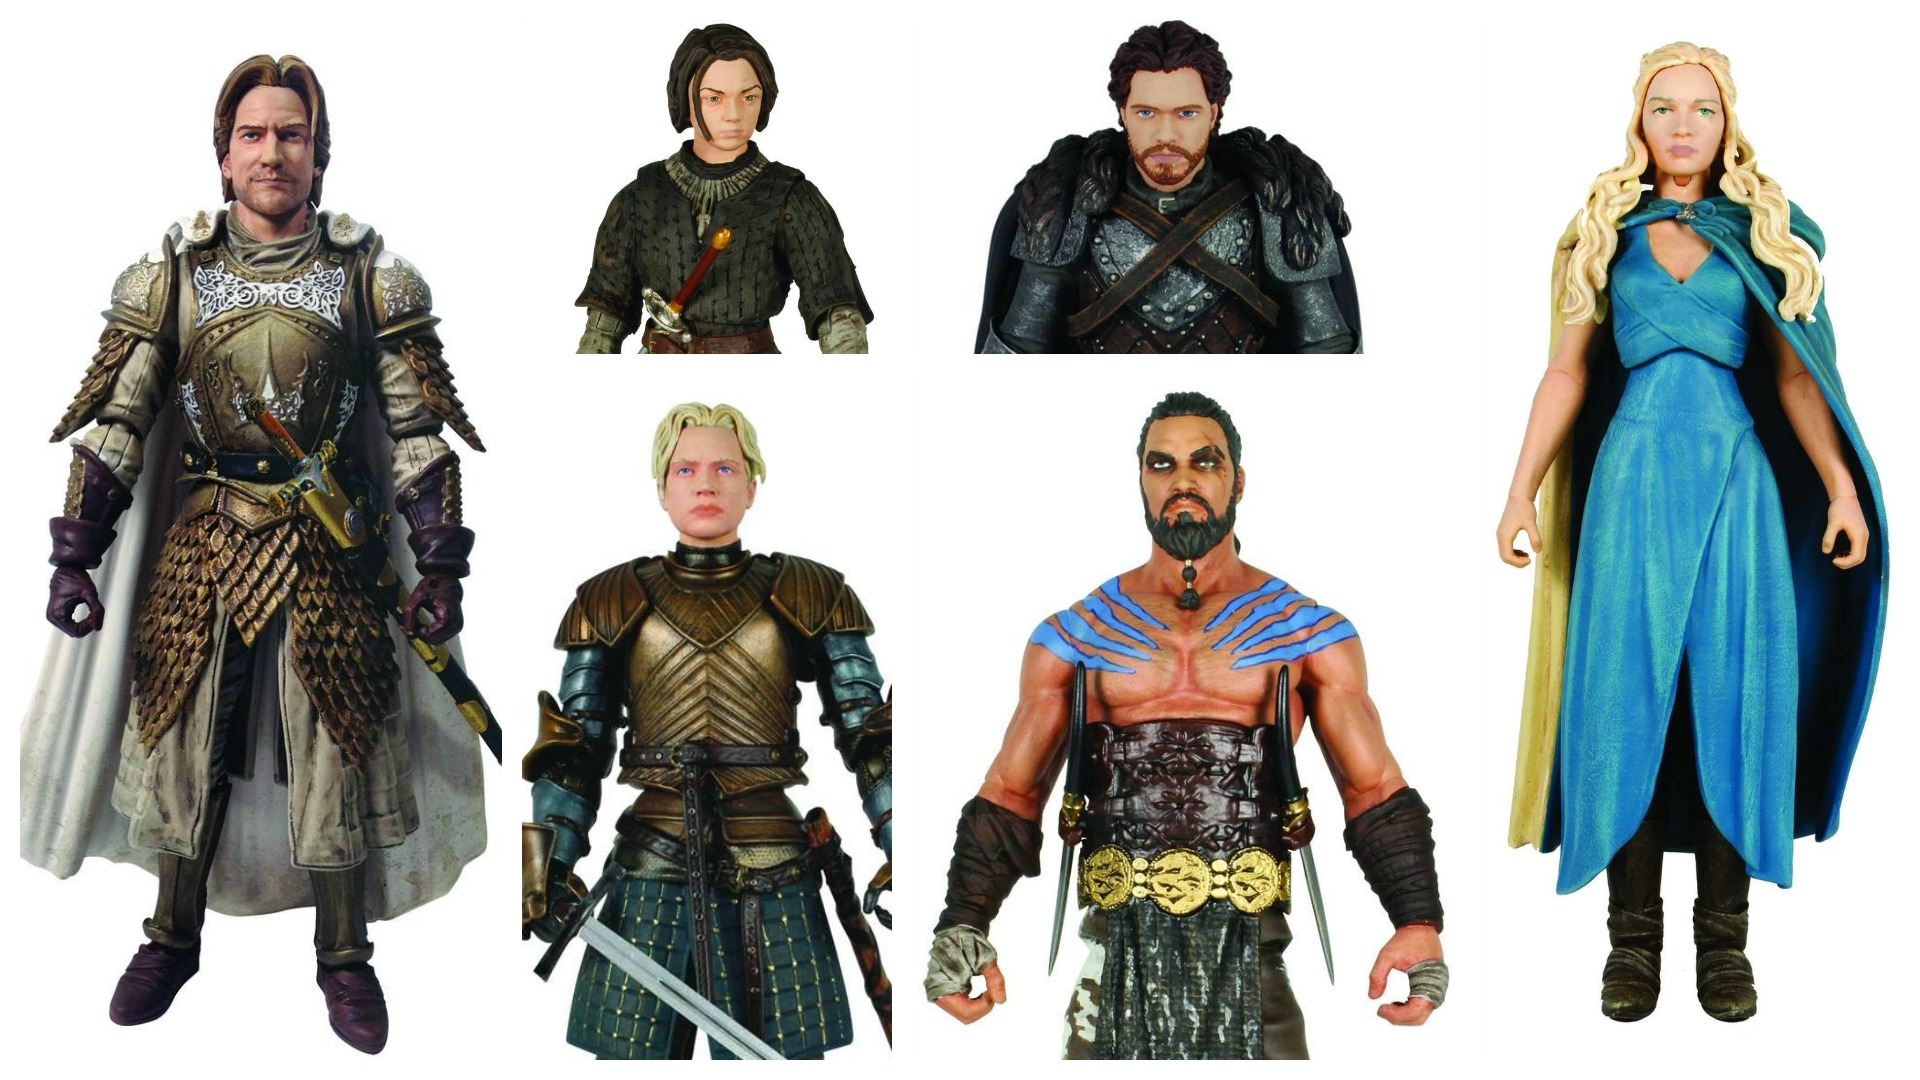 Game Of Thrones Toys : Game of thrones archives actionfigurepics